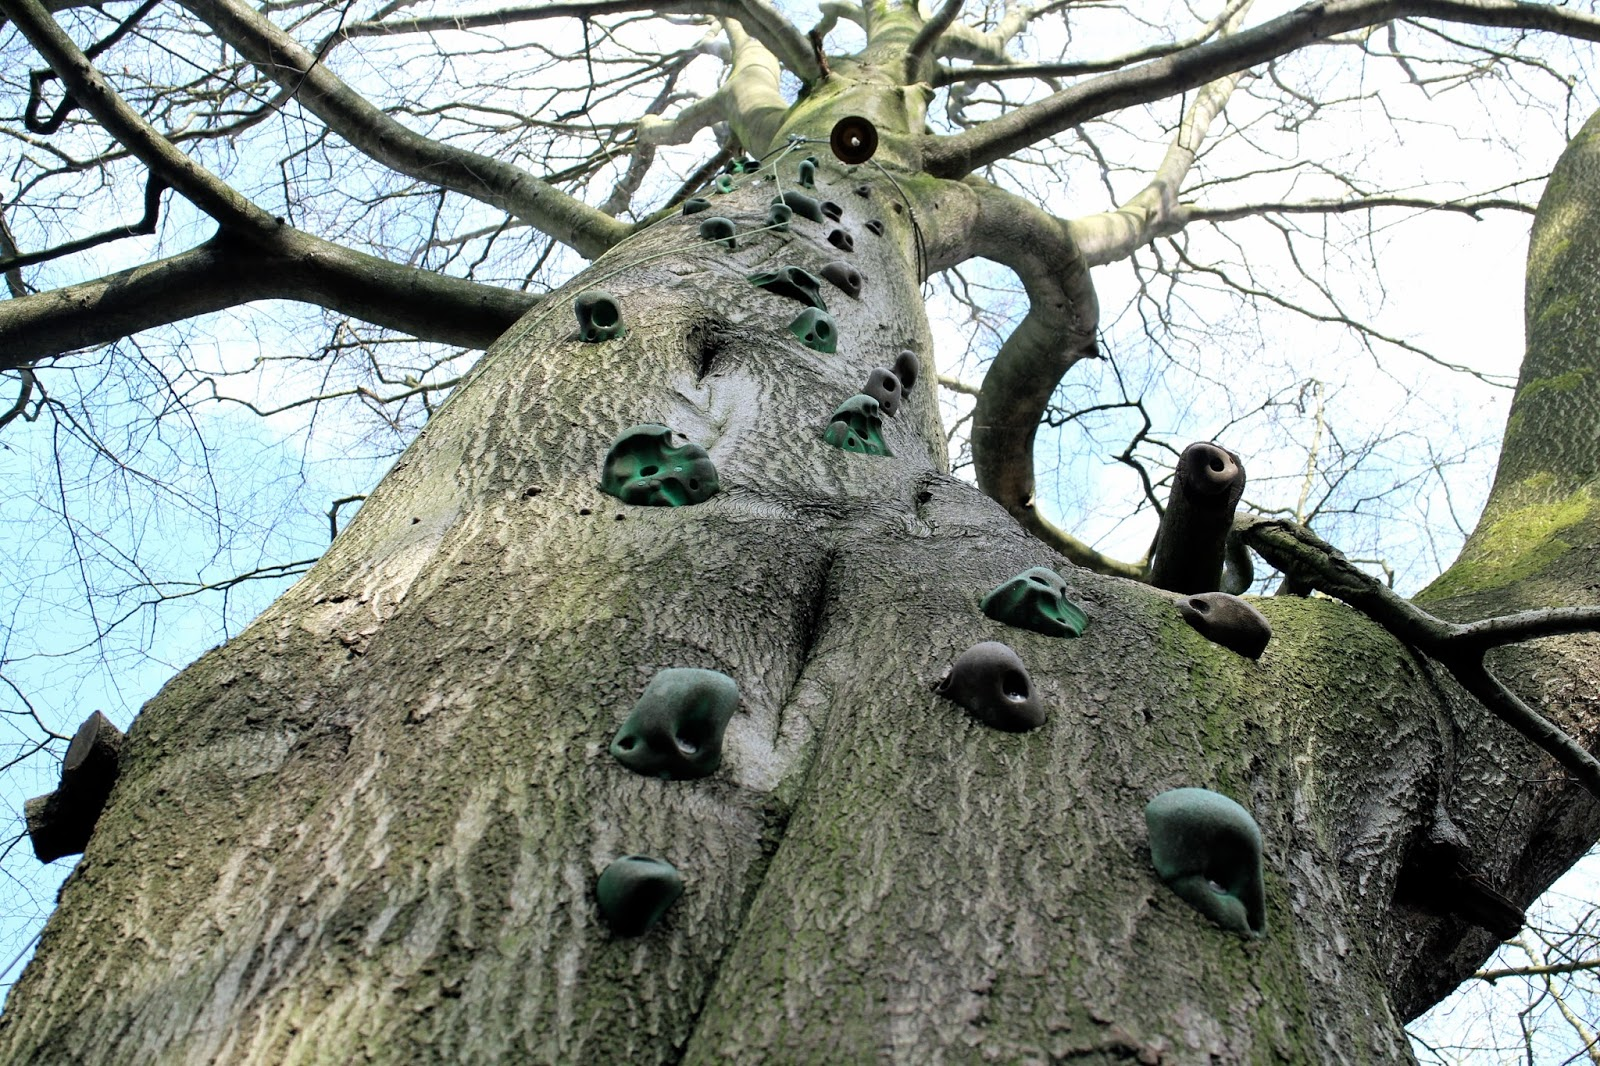 Handmade climbing routes on a tree in Yorkshire, with a bell at the top